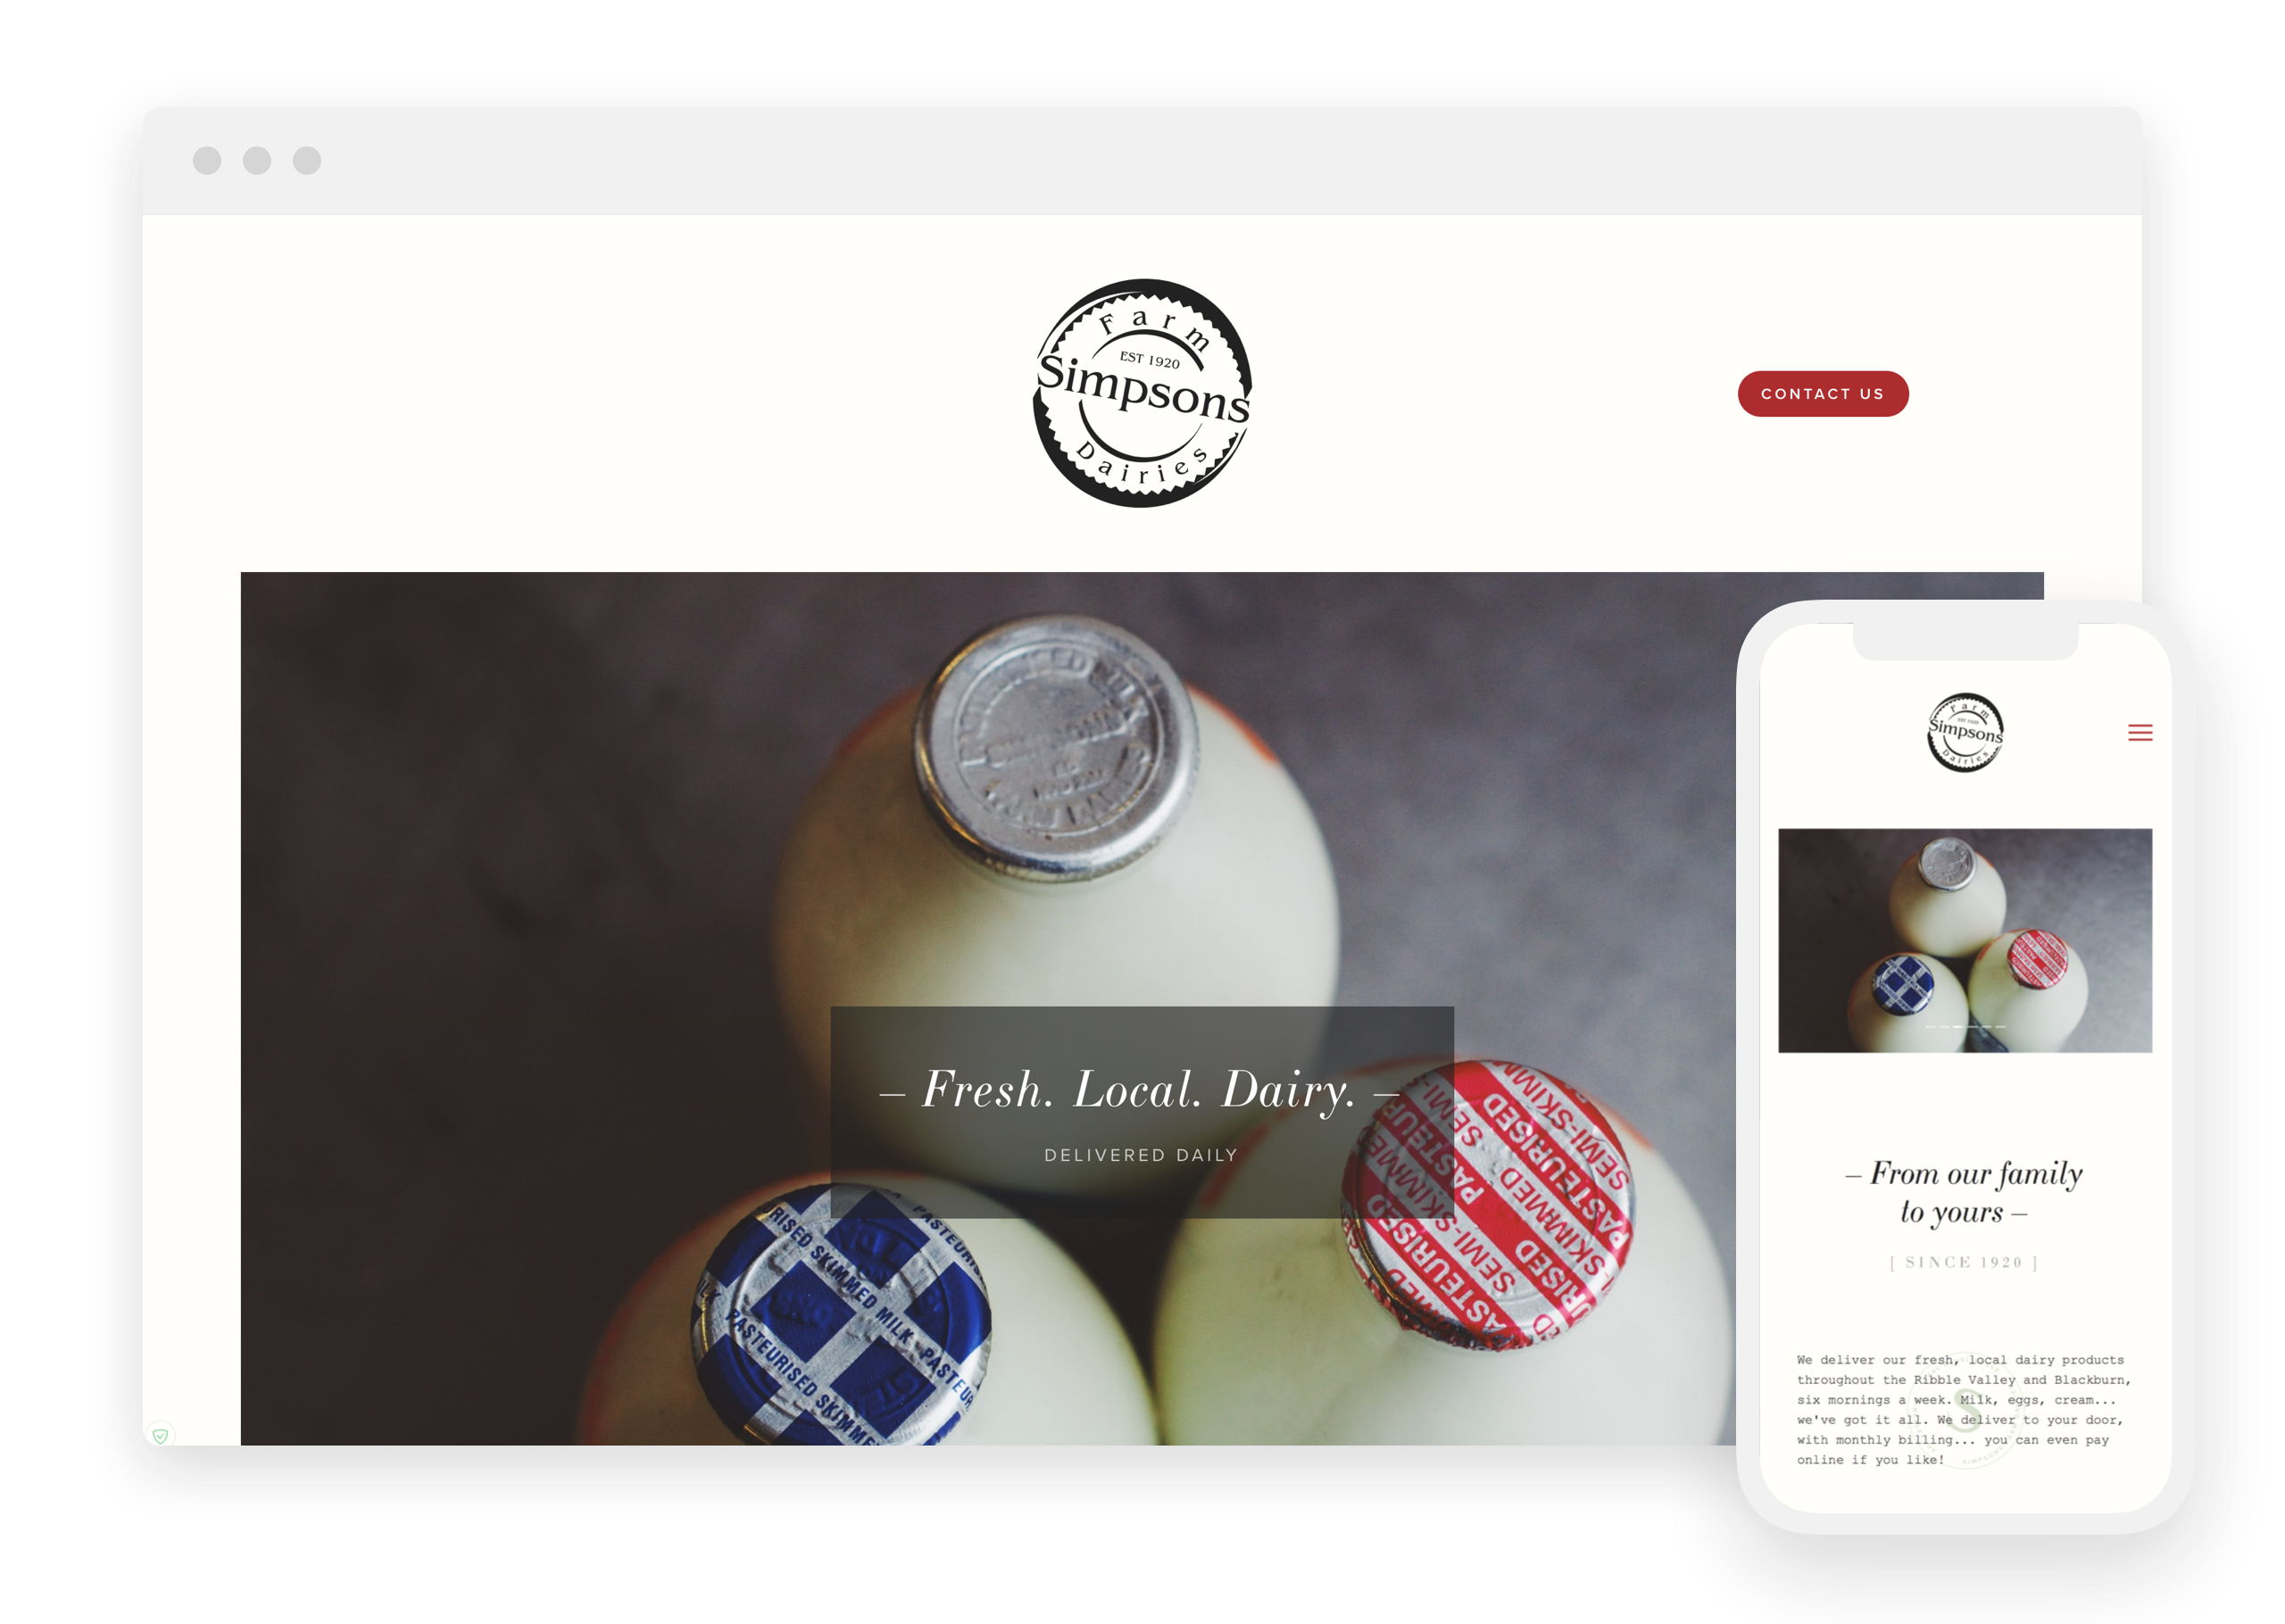 Responsive website design for Simpsons Farm Dairies